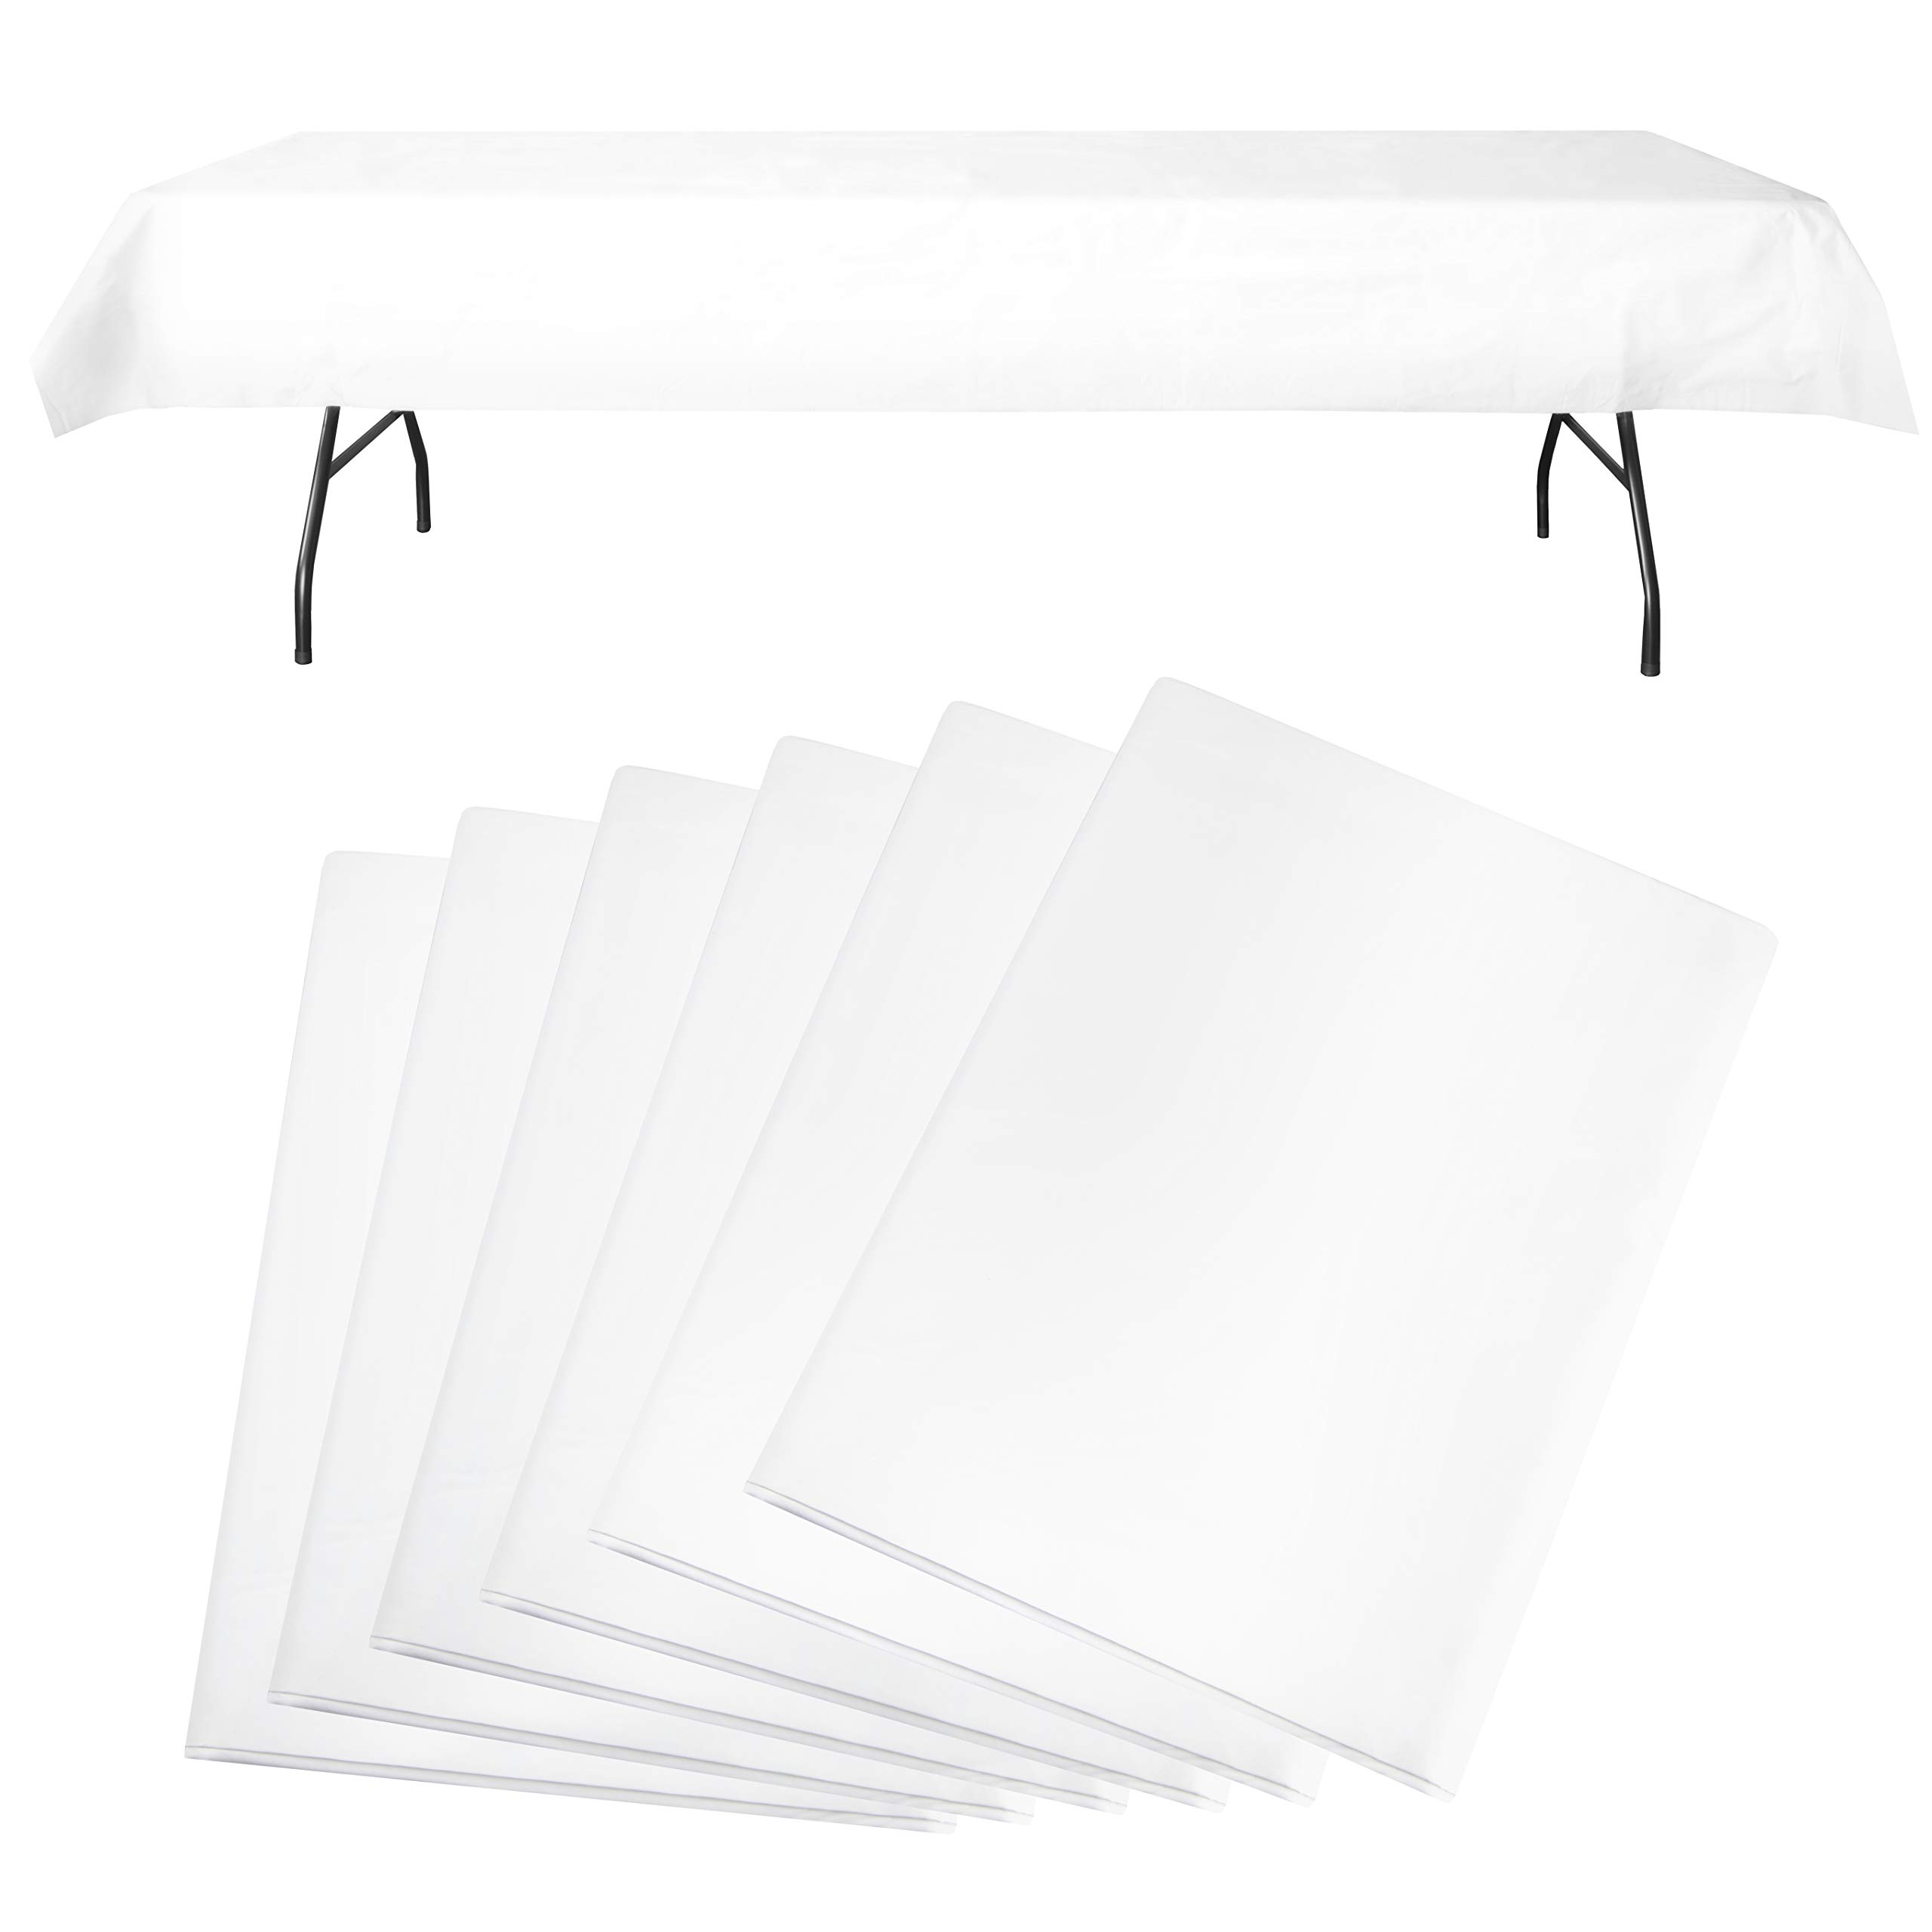 Party Like it's '99 Flannel Backed Plastic Tablecloths (Set of 6) | Best Opaque Heavy Duty Wipeable Disposable Table Cloth | Premium White Vinyl Rectangle Table Cover | 54x108 Inches by Party Like it's '99